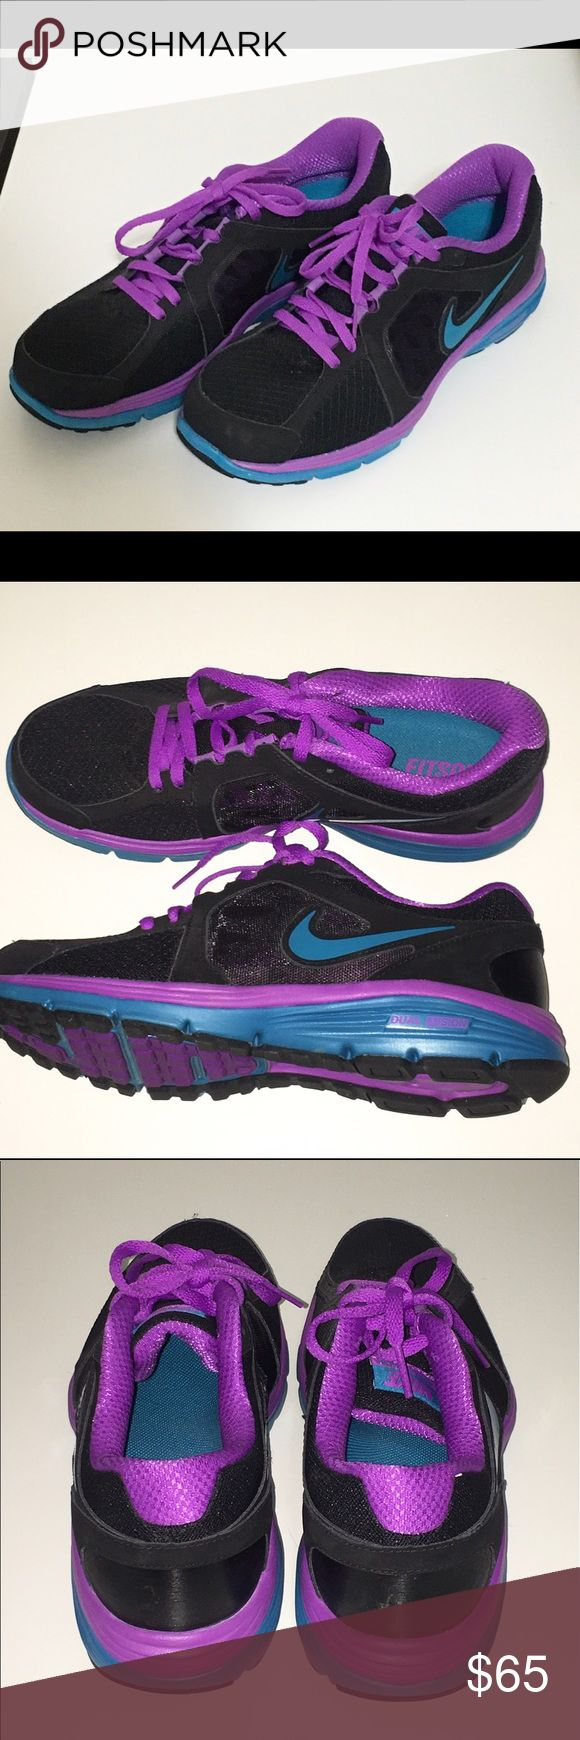 NIKE dual fusion running shoe NIKE dual fusion running shoe size 9. Excellent condition only worn once. Black with blue and purple design. Nike Shoes Athletic Shoes